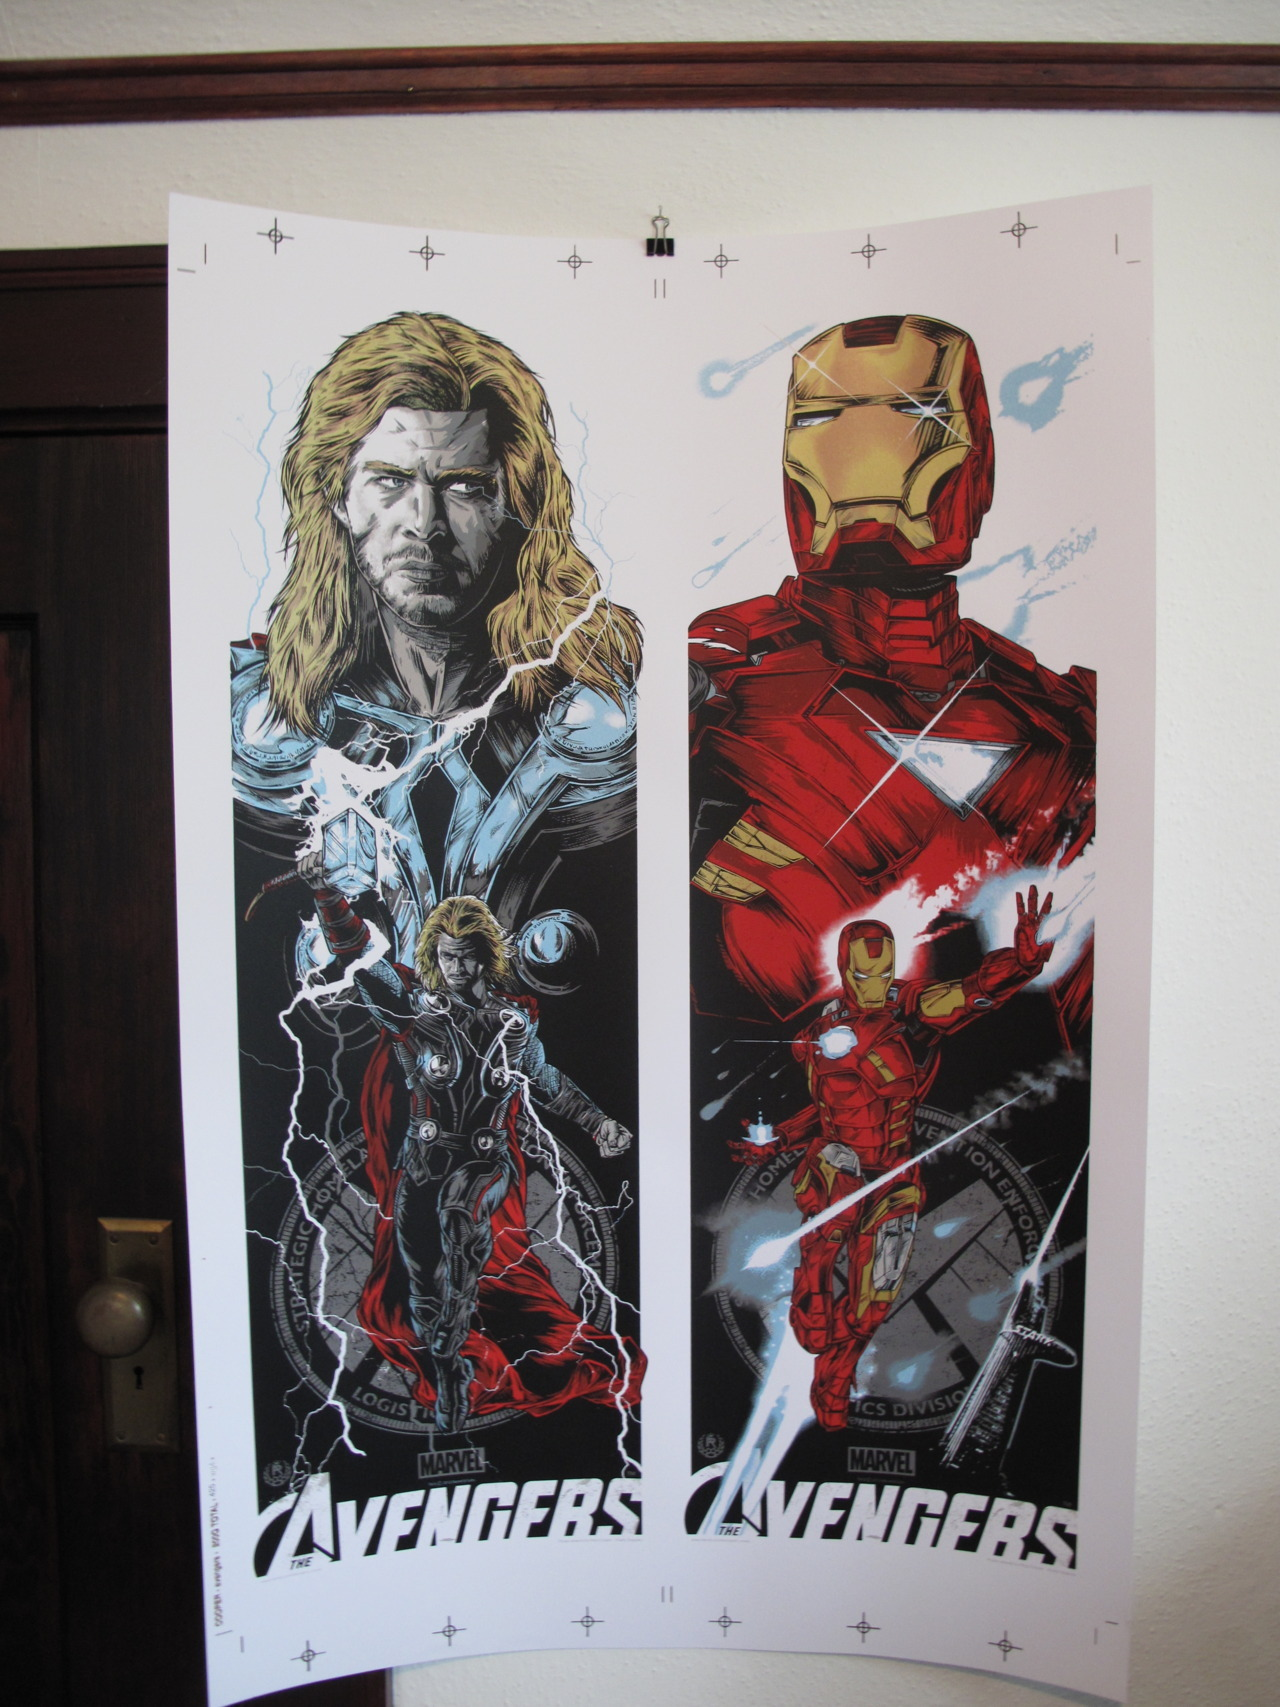 """THOR/IRON MAN"" UNCUT BY RHYS COOPER FOR GALLERY 1988'S ""ASSEMBLE"" SHOW ON MAY 3RD 6 COLORS including 2 metallics COUGAR 100LB. COVER IN WHITE"